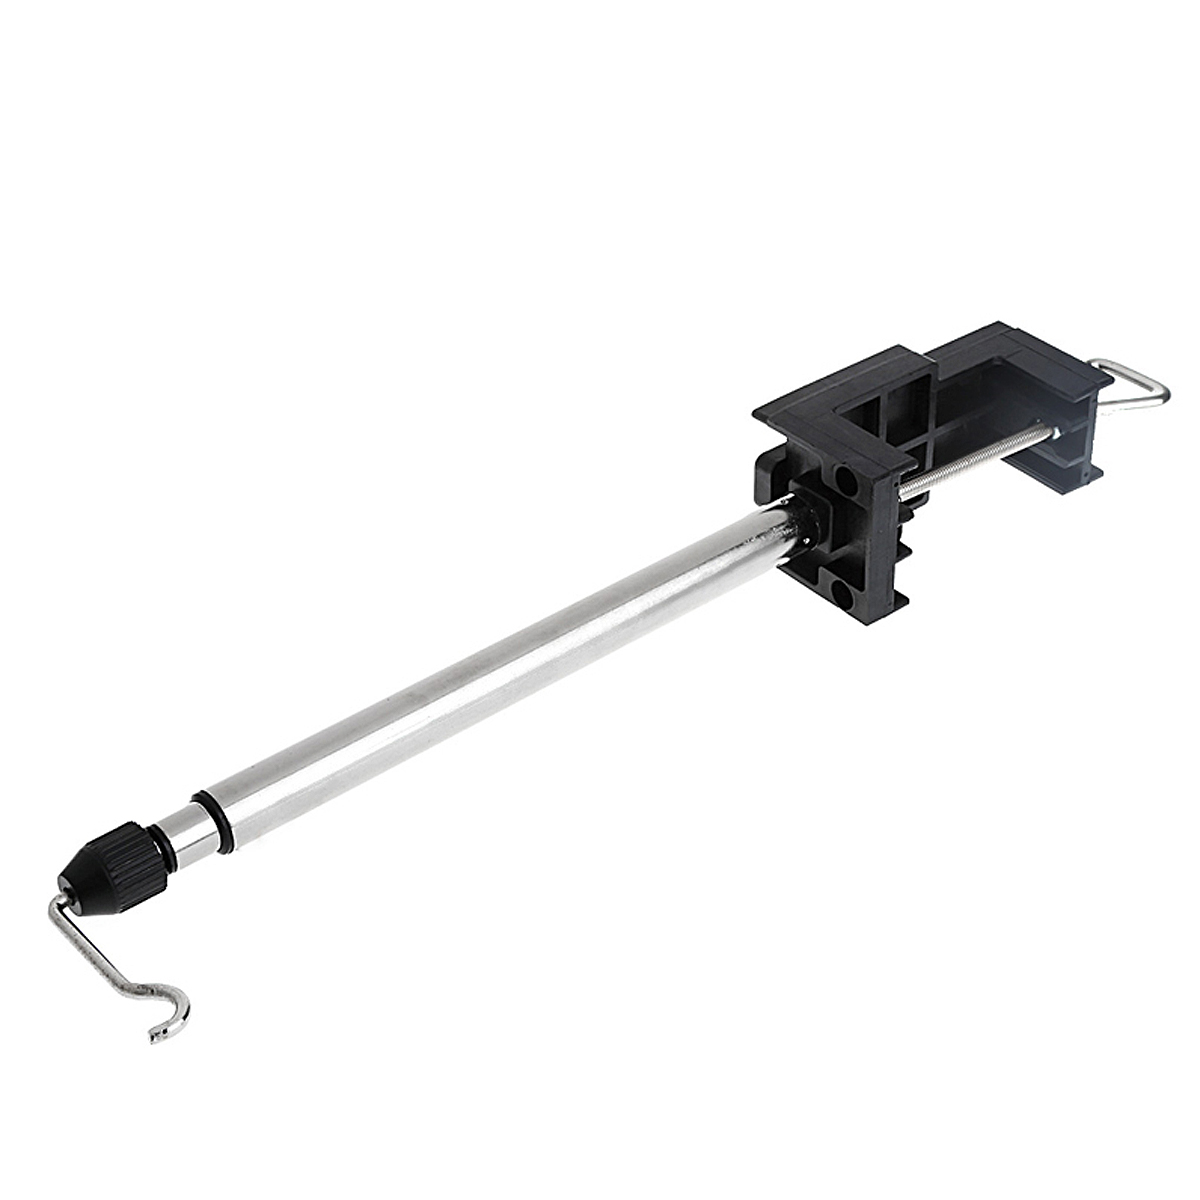 360 Degrees Flexible Shaft Rotary Grinder Stand Holder Stand Clamp Hanger Tool For Mini Drill Rotary Power Tool Accessories